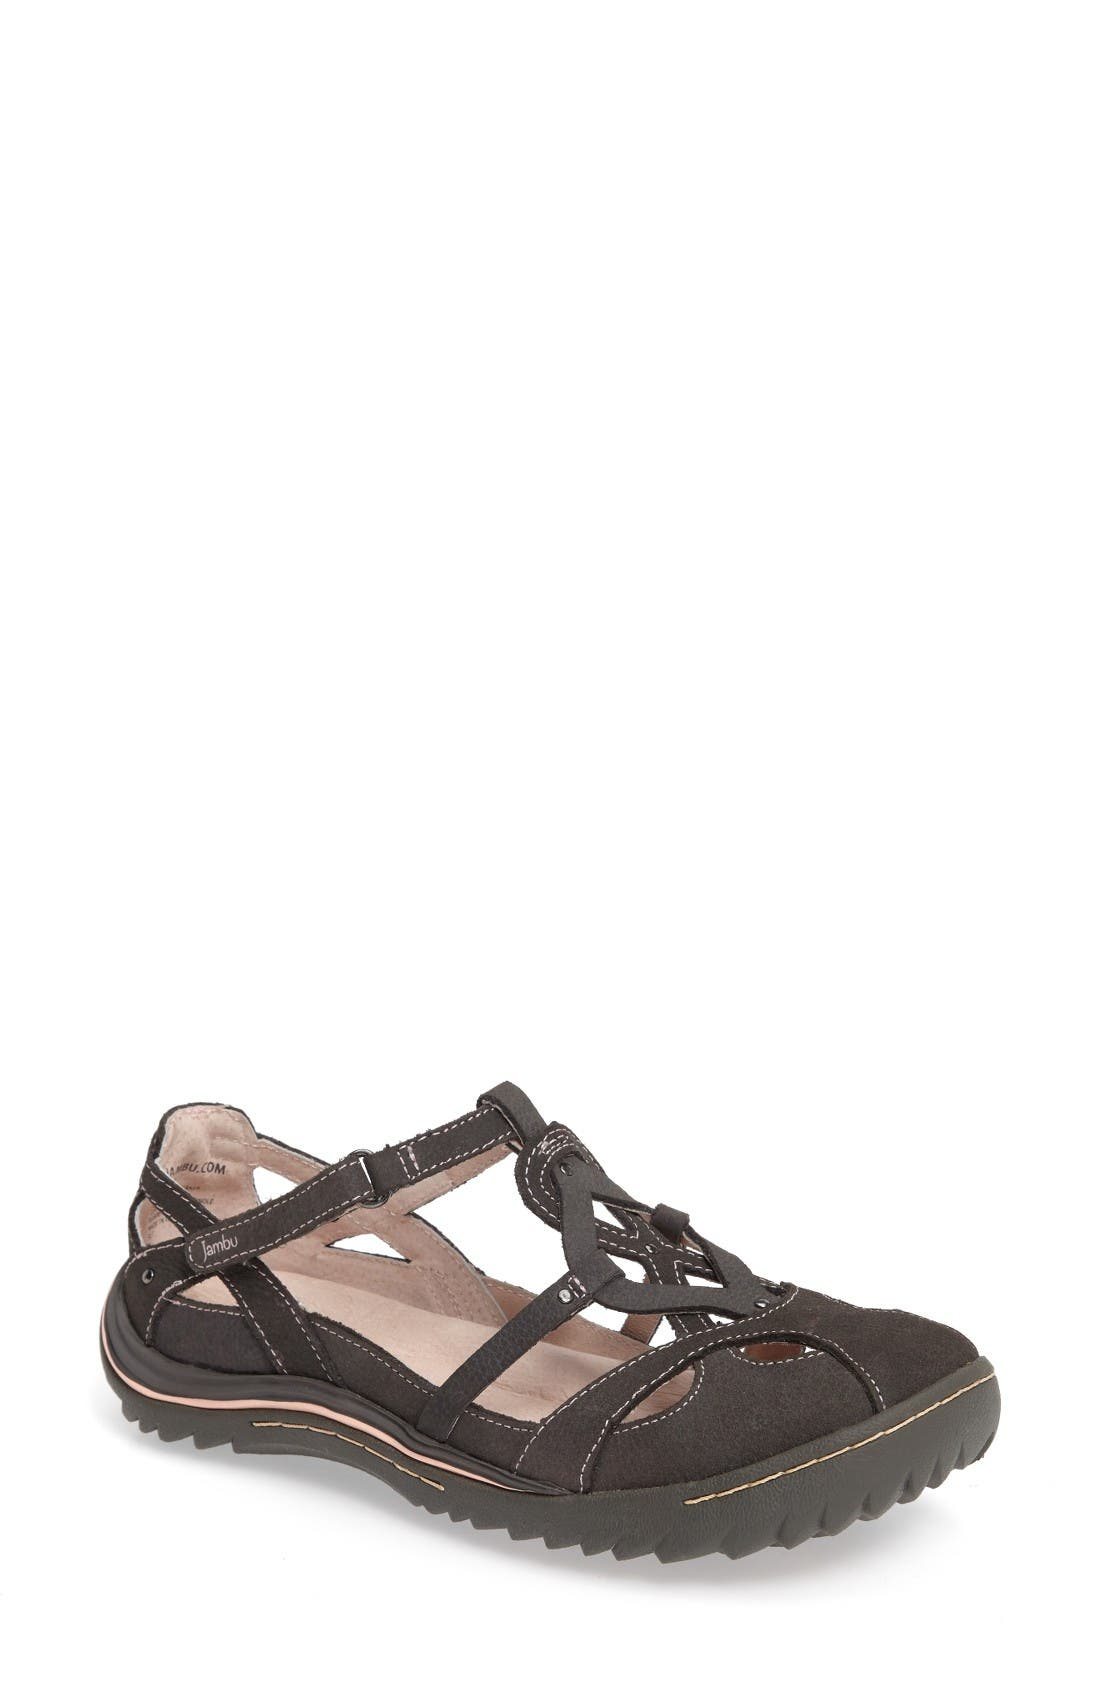 Spain Studded Strappy Sneaker,                         Main,                         color, Grey